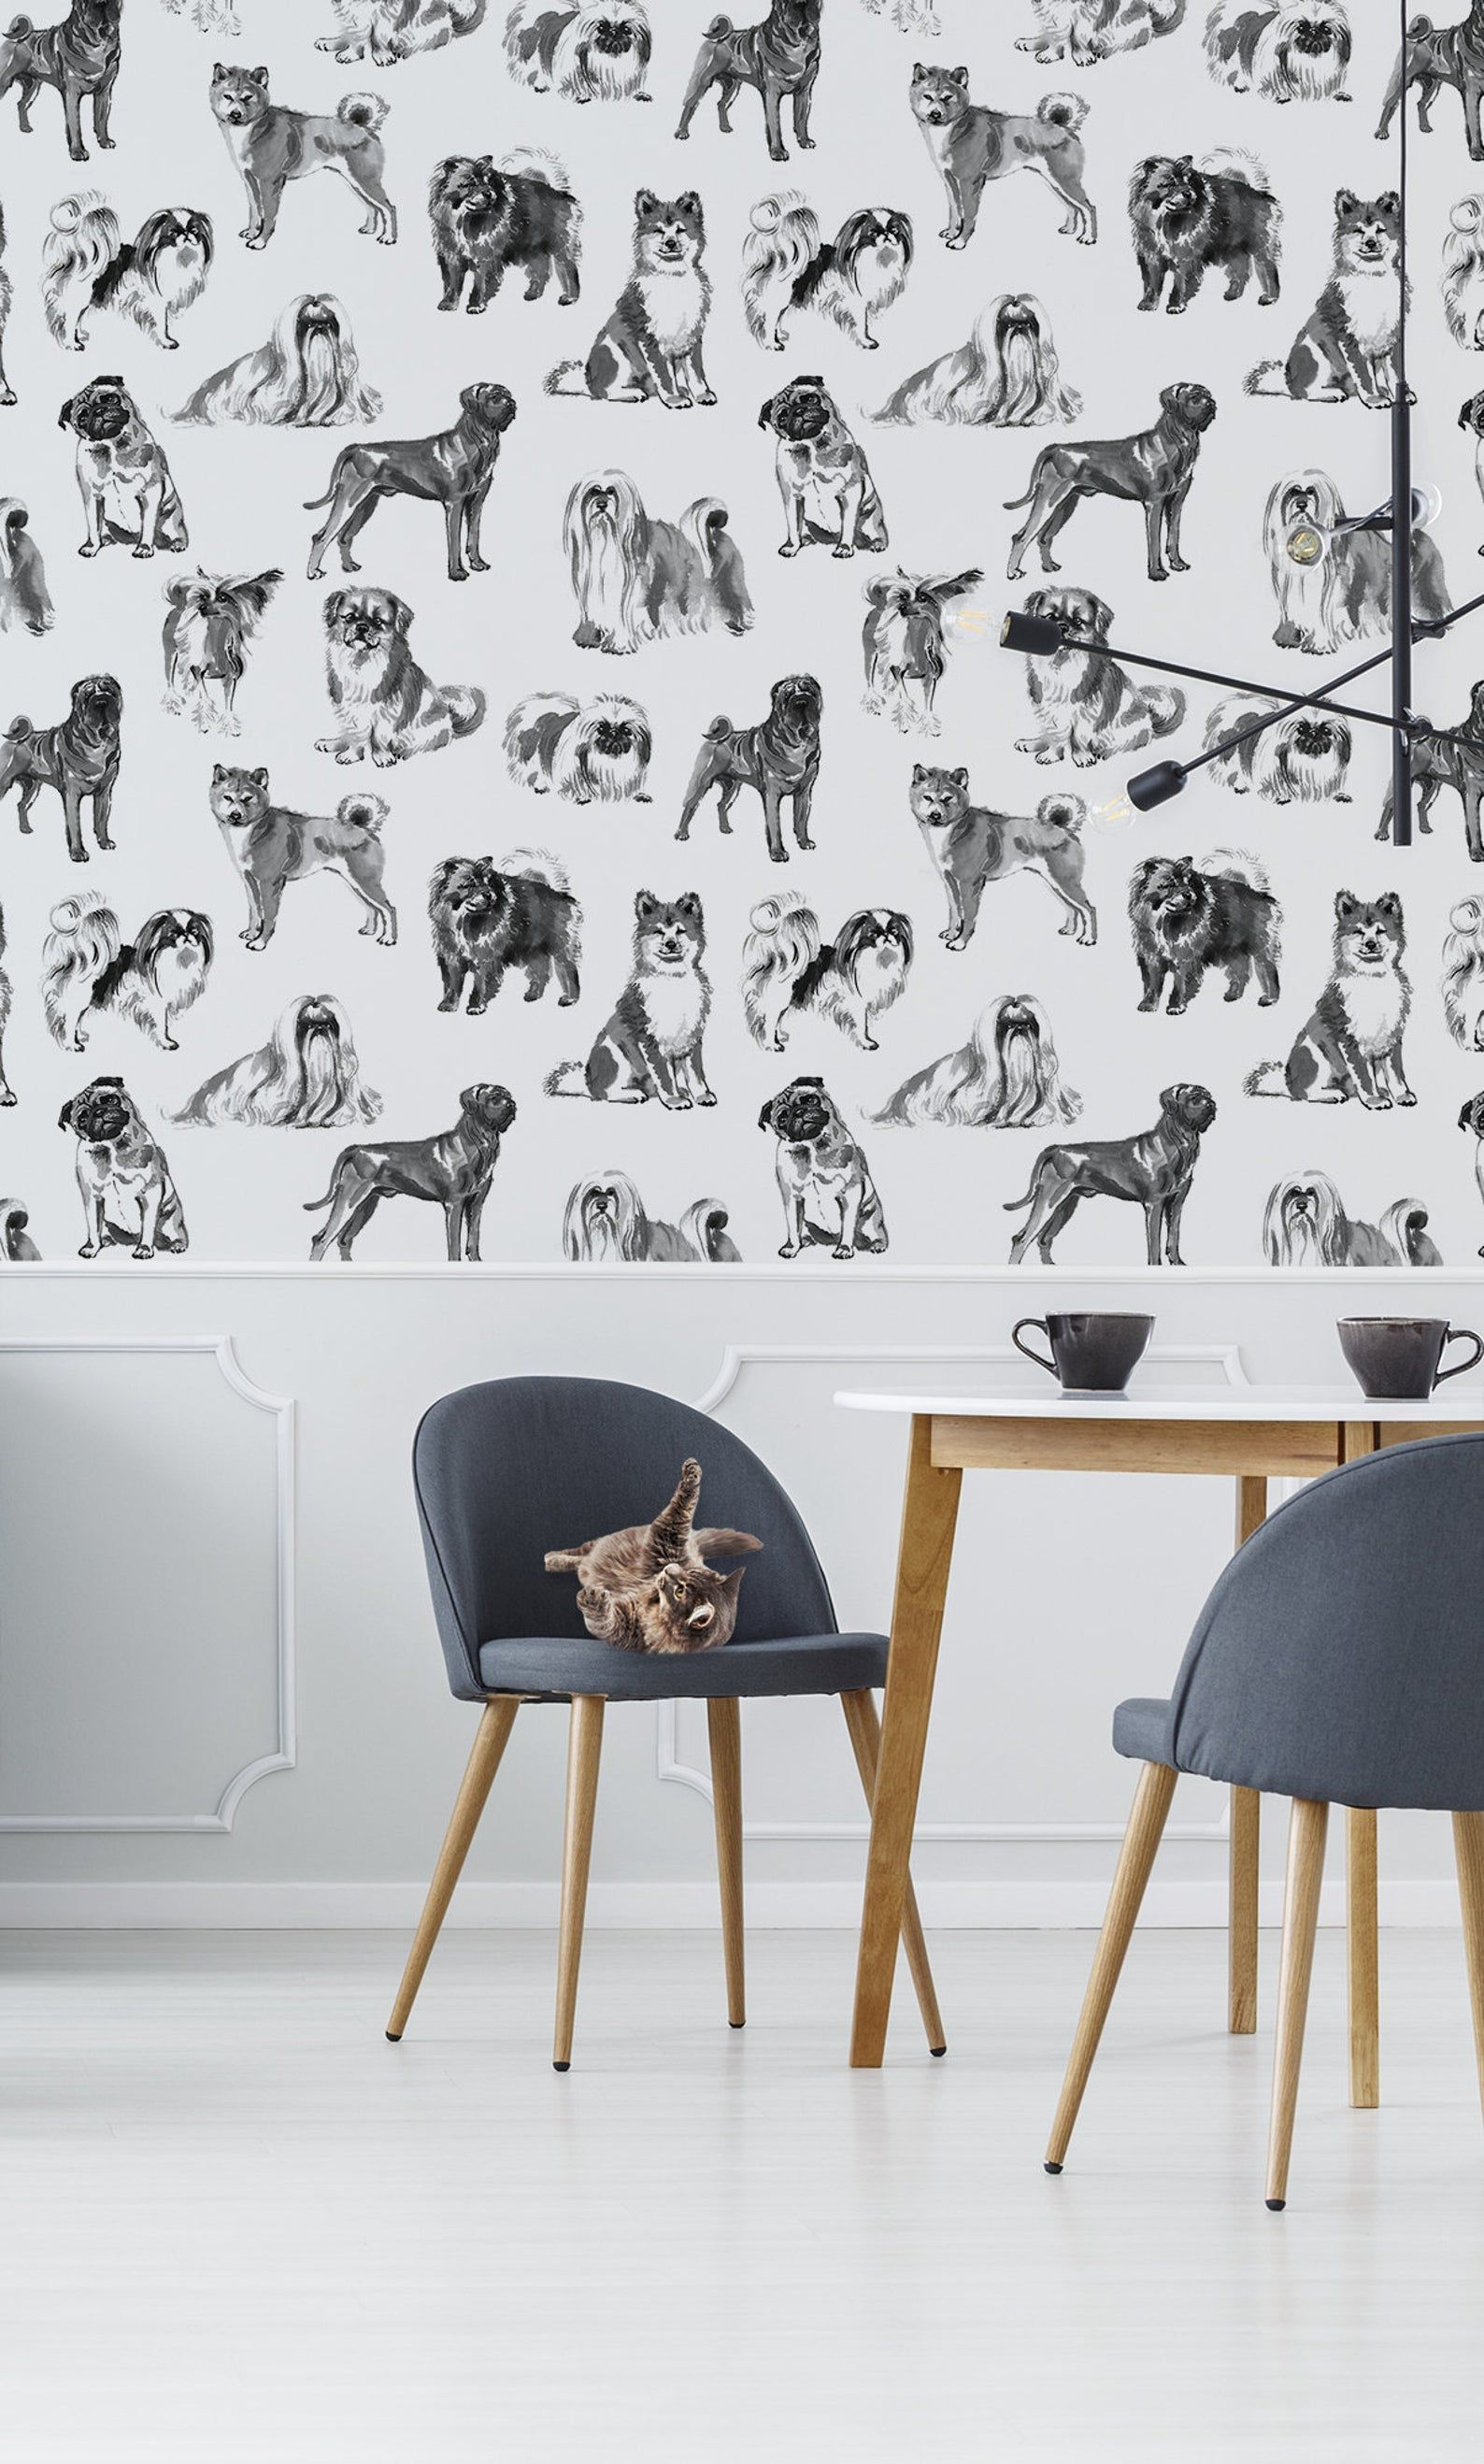 Dogs Wallpaper Peel And Stick Wall Mural Removable Animal Etsy Black And White Wallpaper White Wallpaper Watercolor Walls